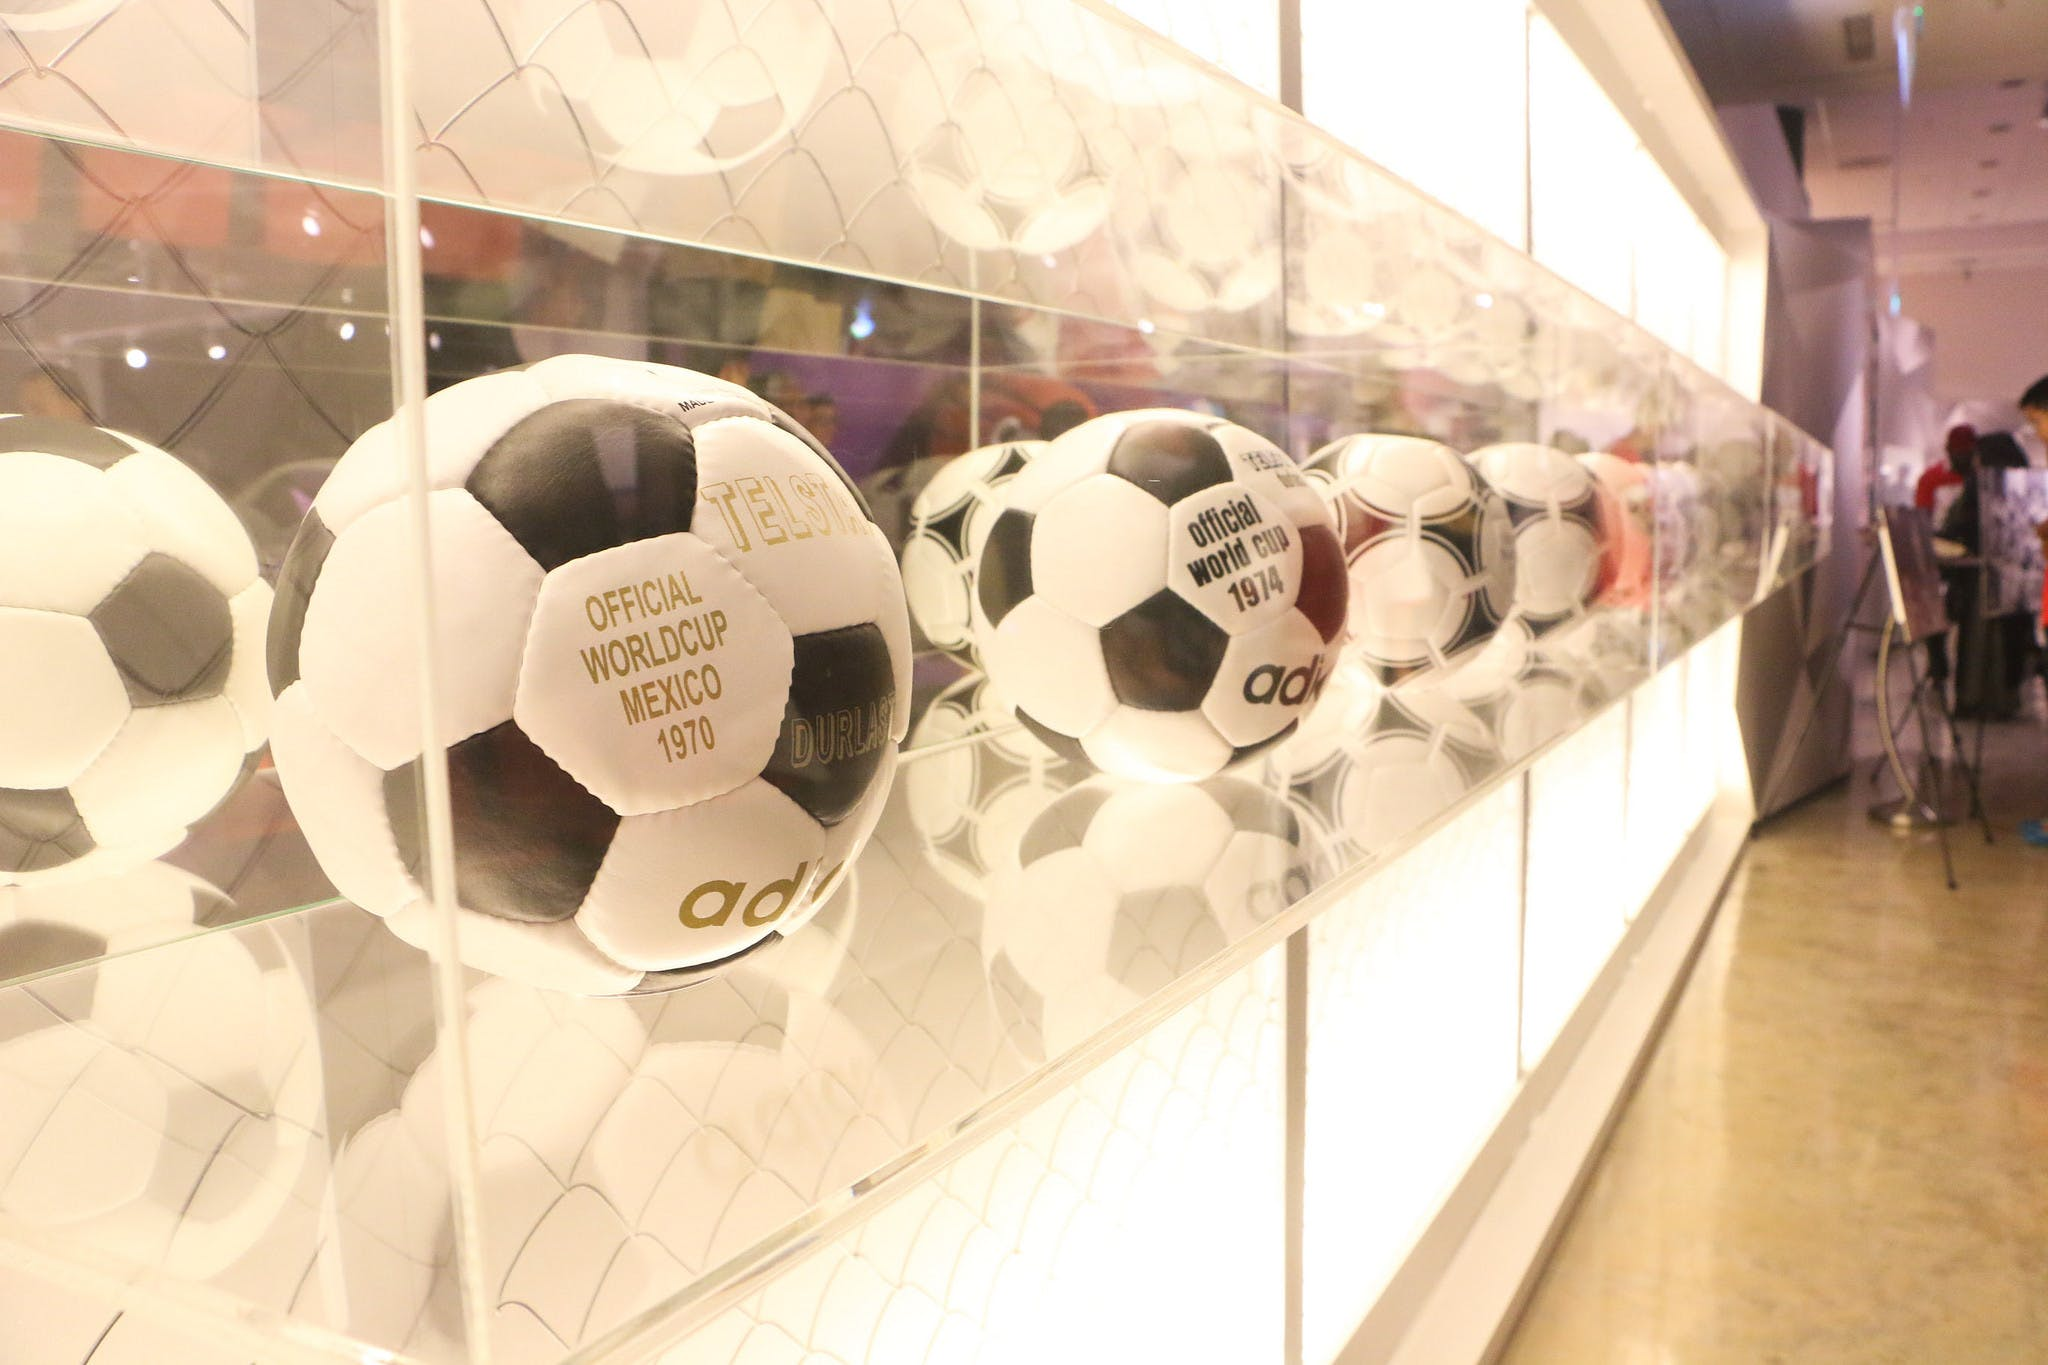 Iconic footballs in the Singapore Sports museum. An Adidas ball from the official World Cup Mexico 1970.